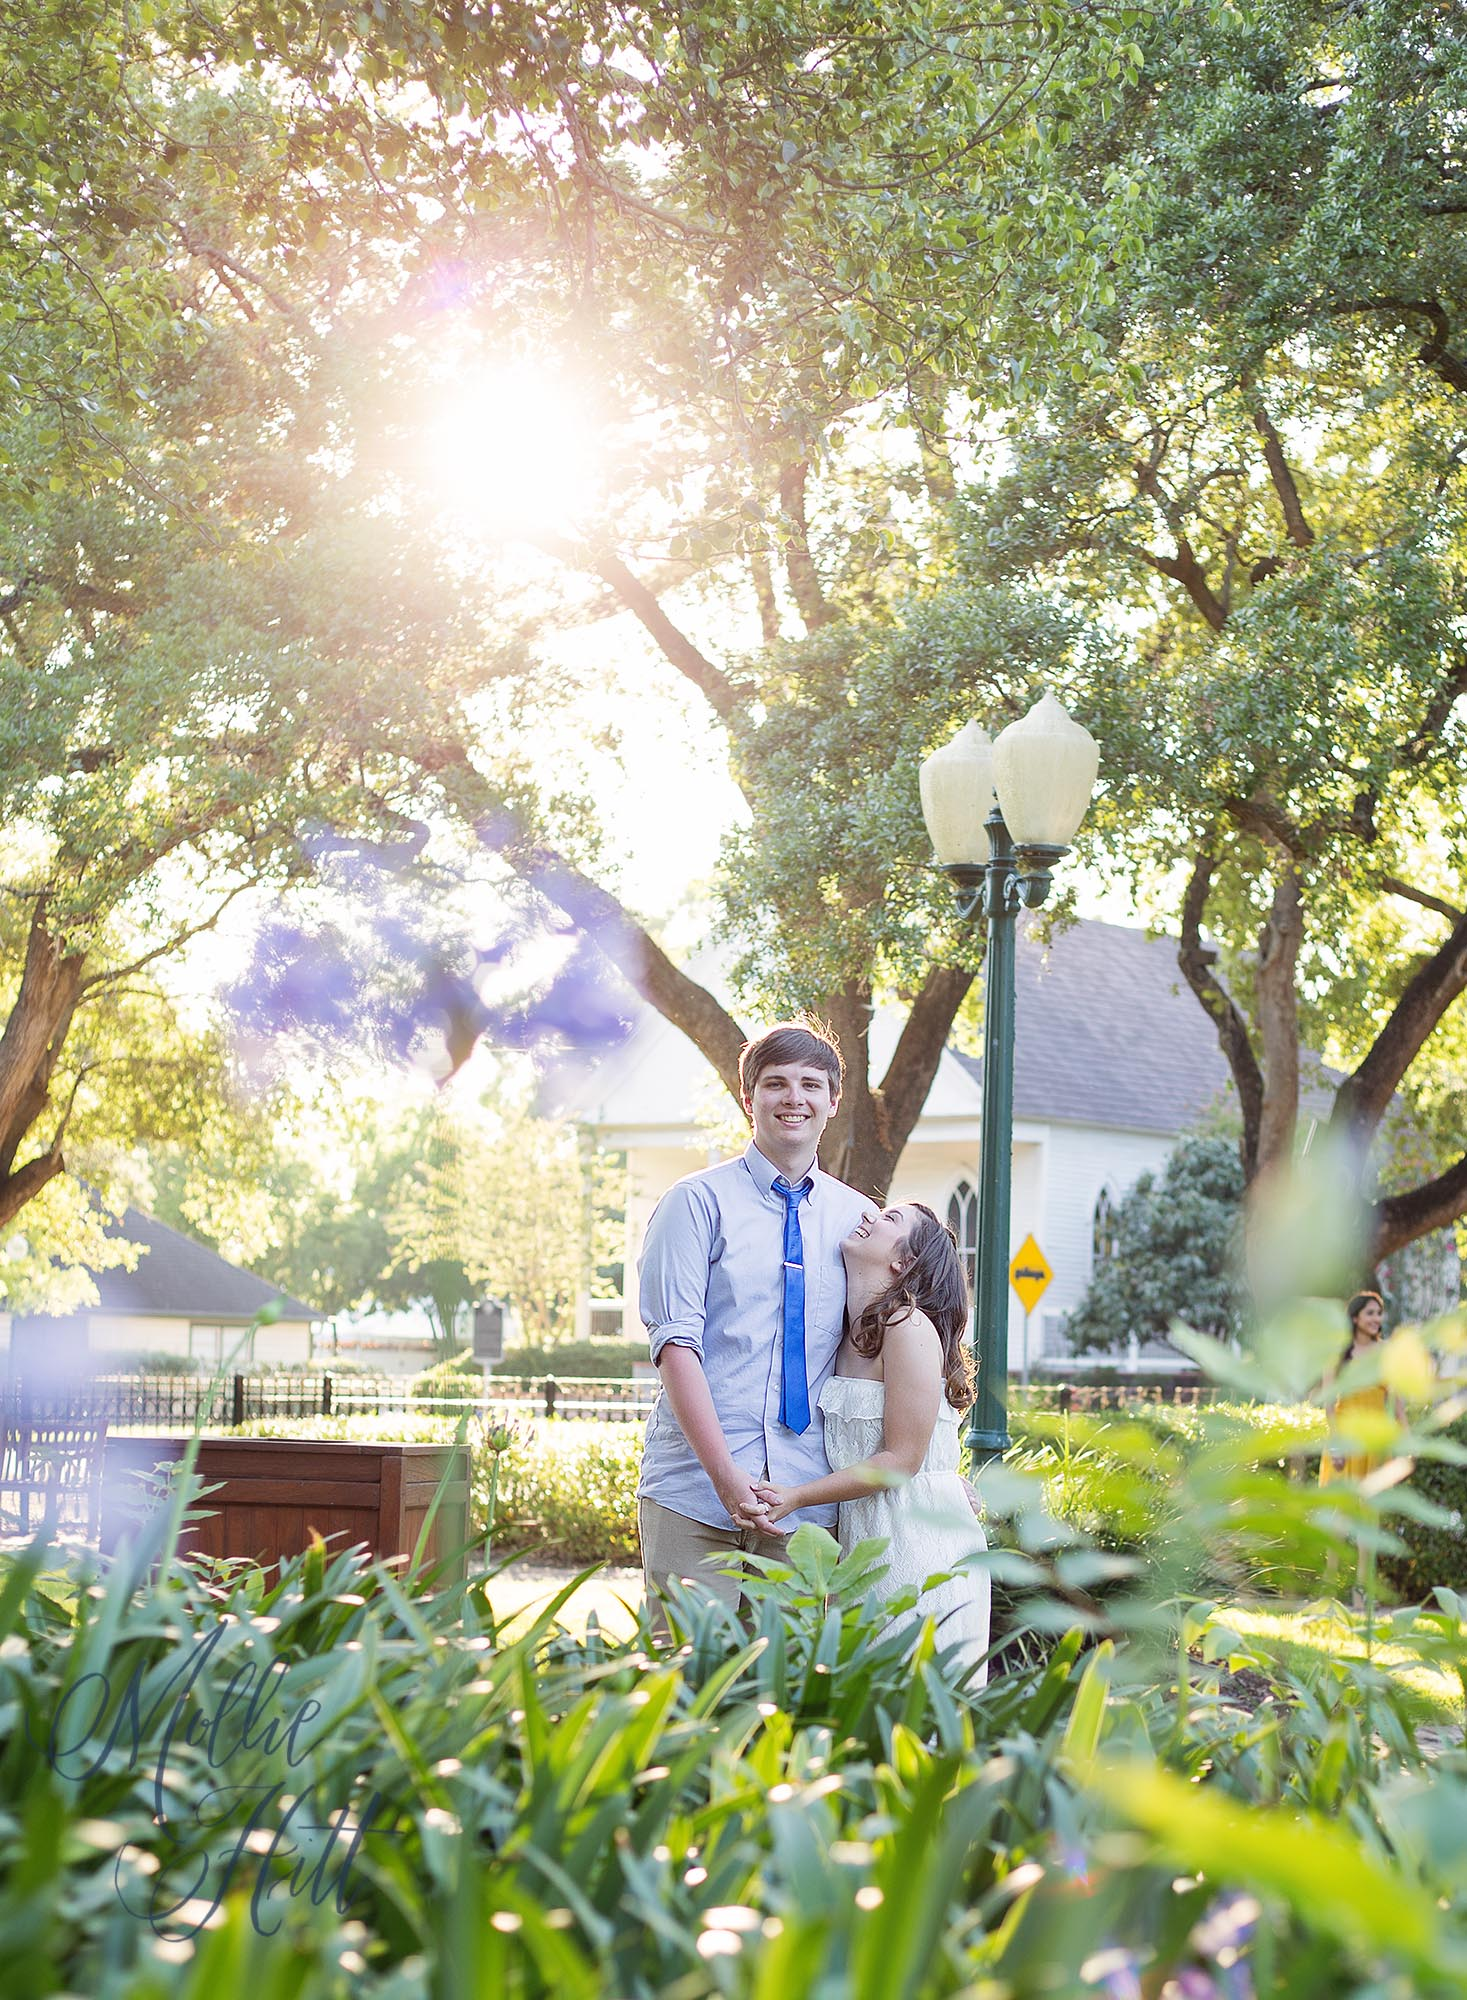 Graduating senior boy and girl couple sharing a romantic moment surrounded by flowers with a warm sun flare at golden hour